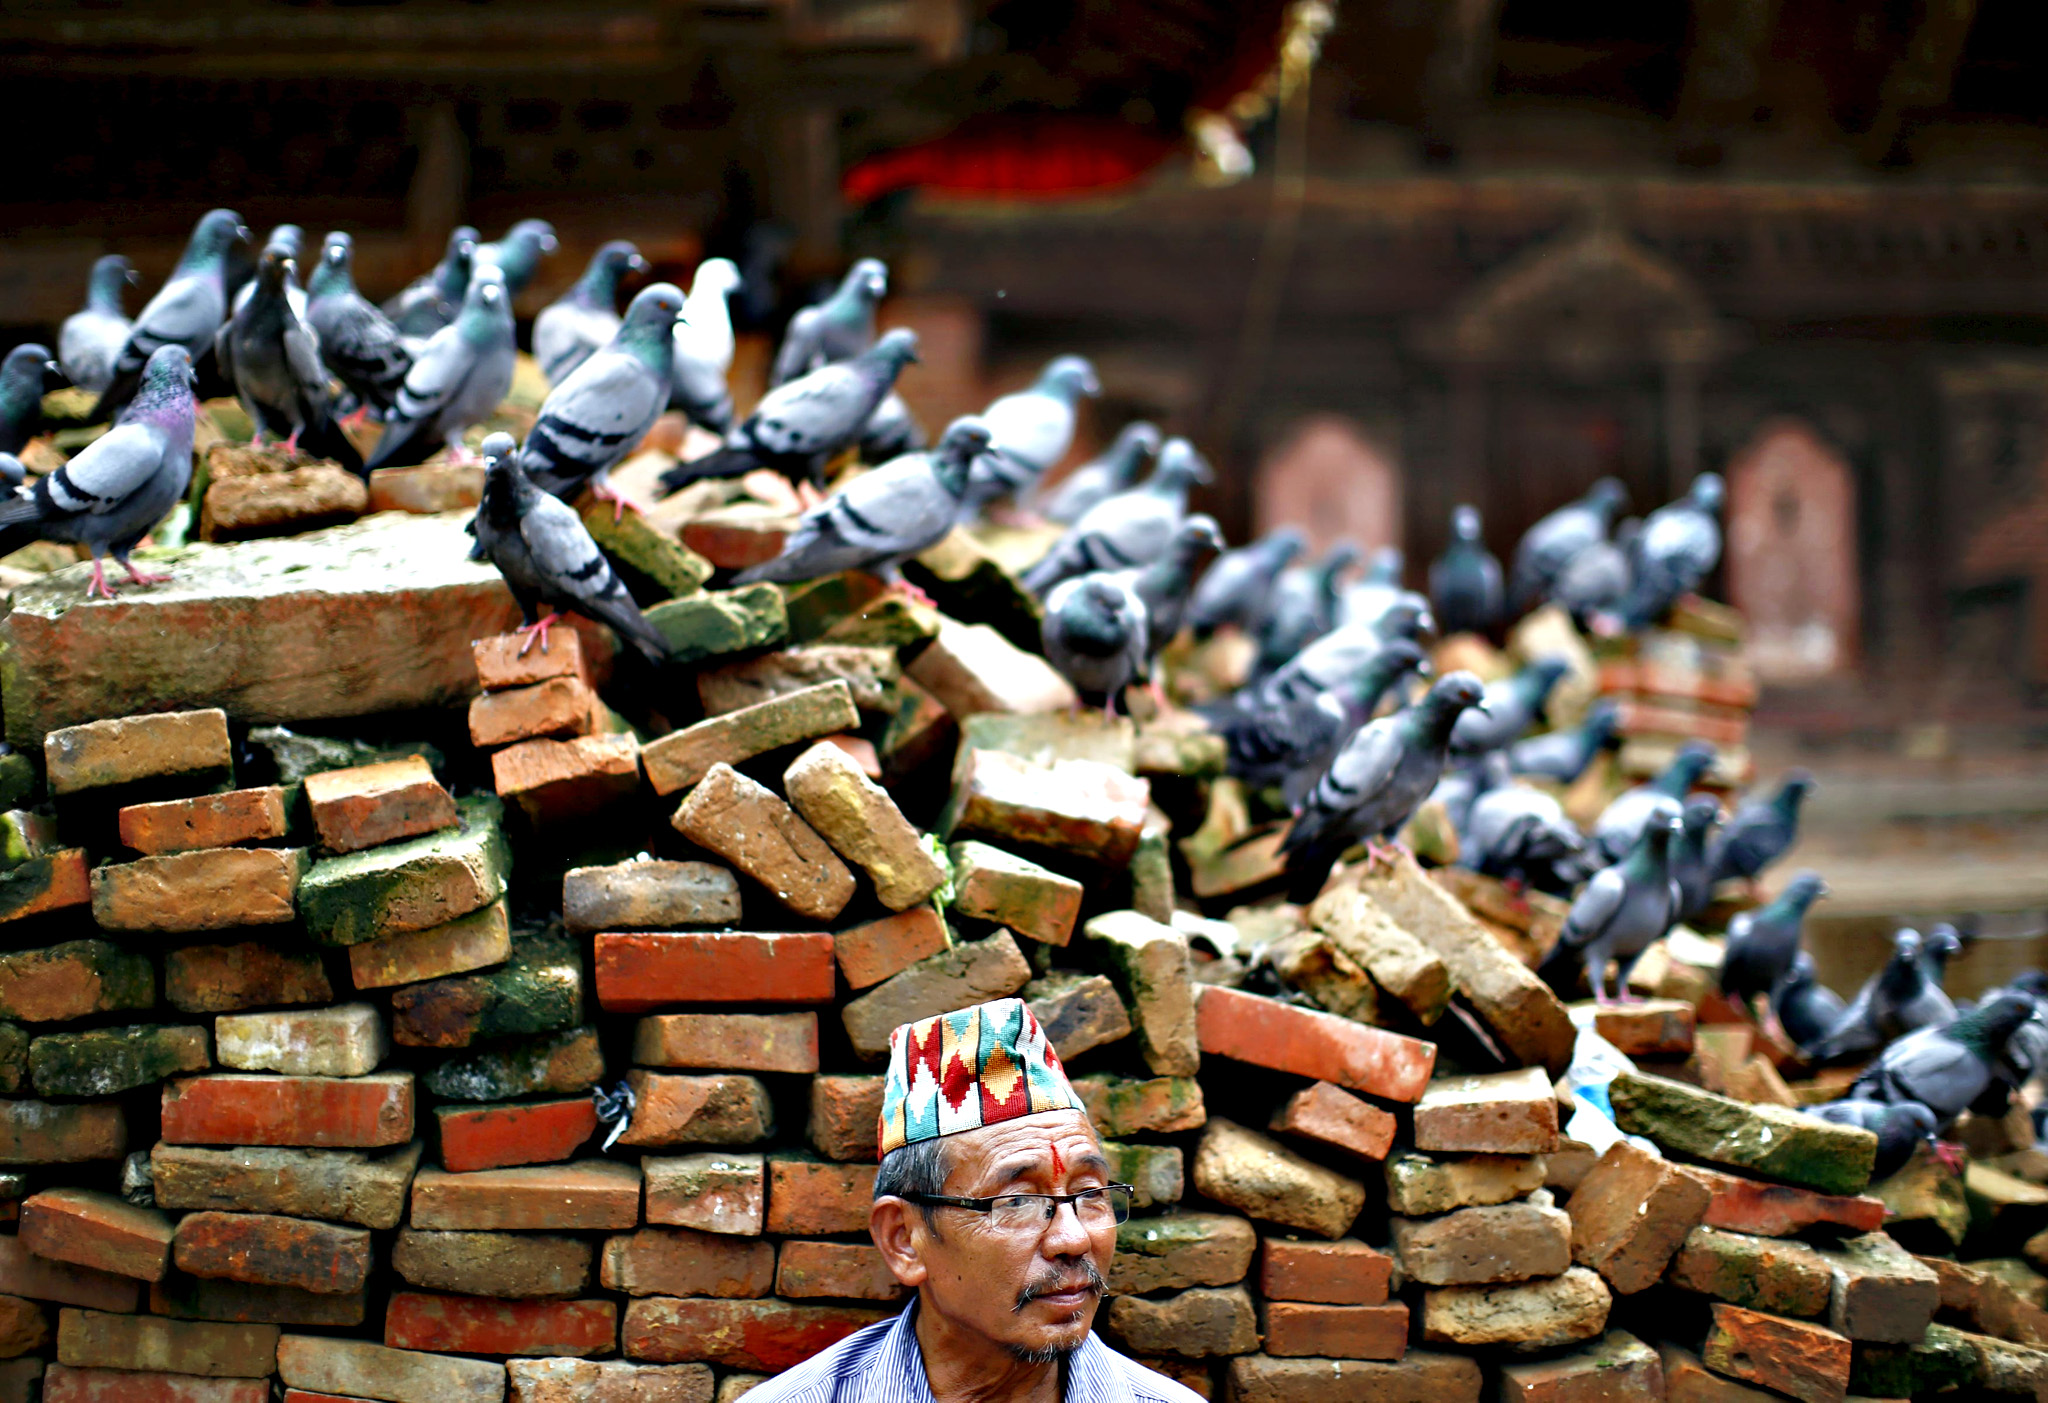 Man sits next to pigeons resting on a pile of bricks collected from the collapsed temple damaged during the earthquake at Hanumandhoka Durbar Square in Kathmandu...A man sits next to pigeons resting on a pile of bricks collected from the collapsed temple damaged during the earthquake at Hanumandhoka Durbar Square in Kathmandu, Nepal August 20, 2015